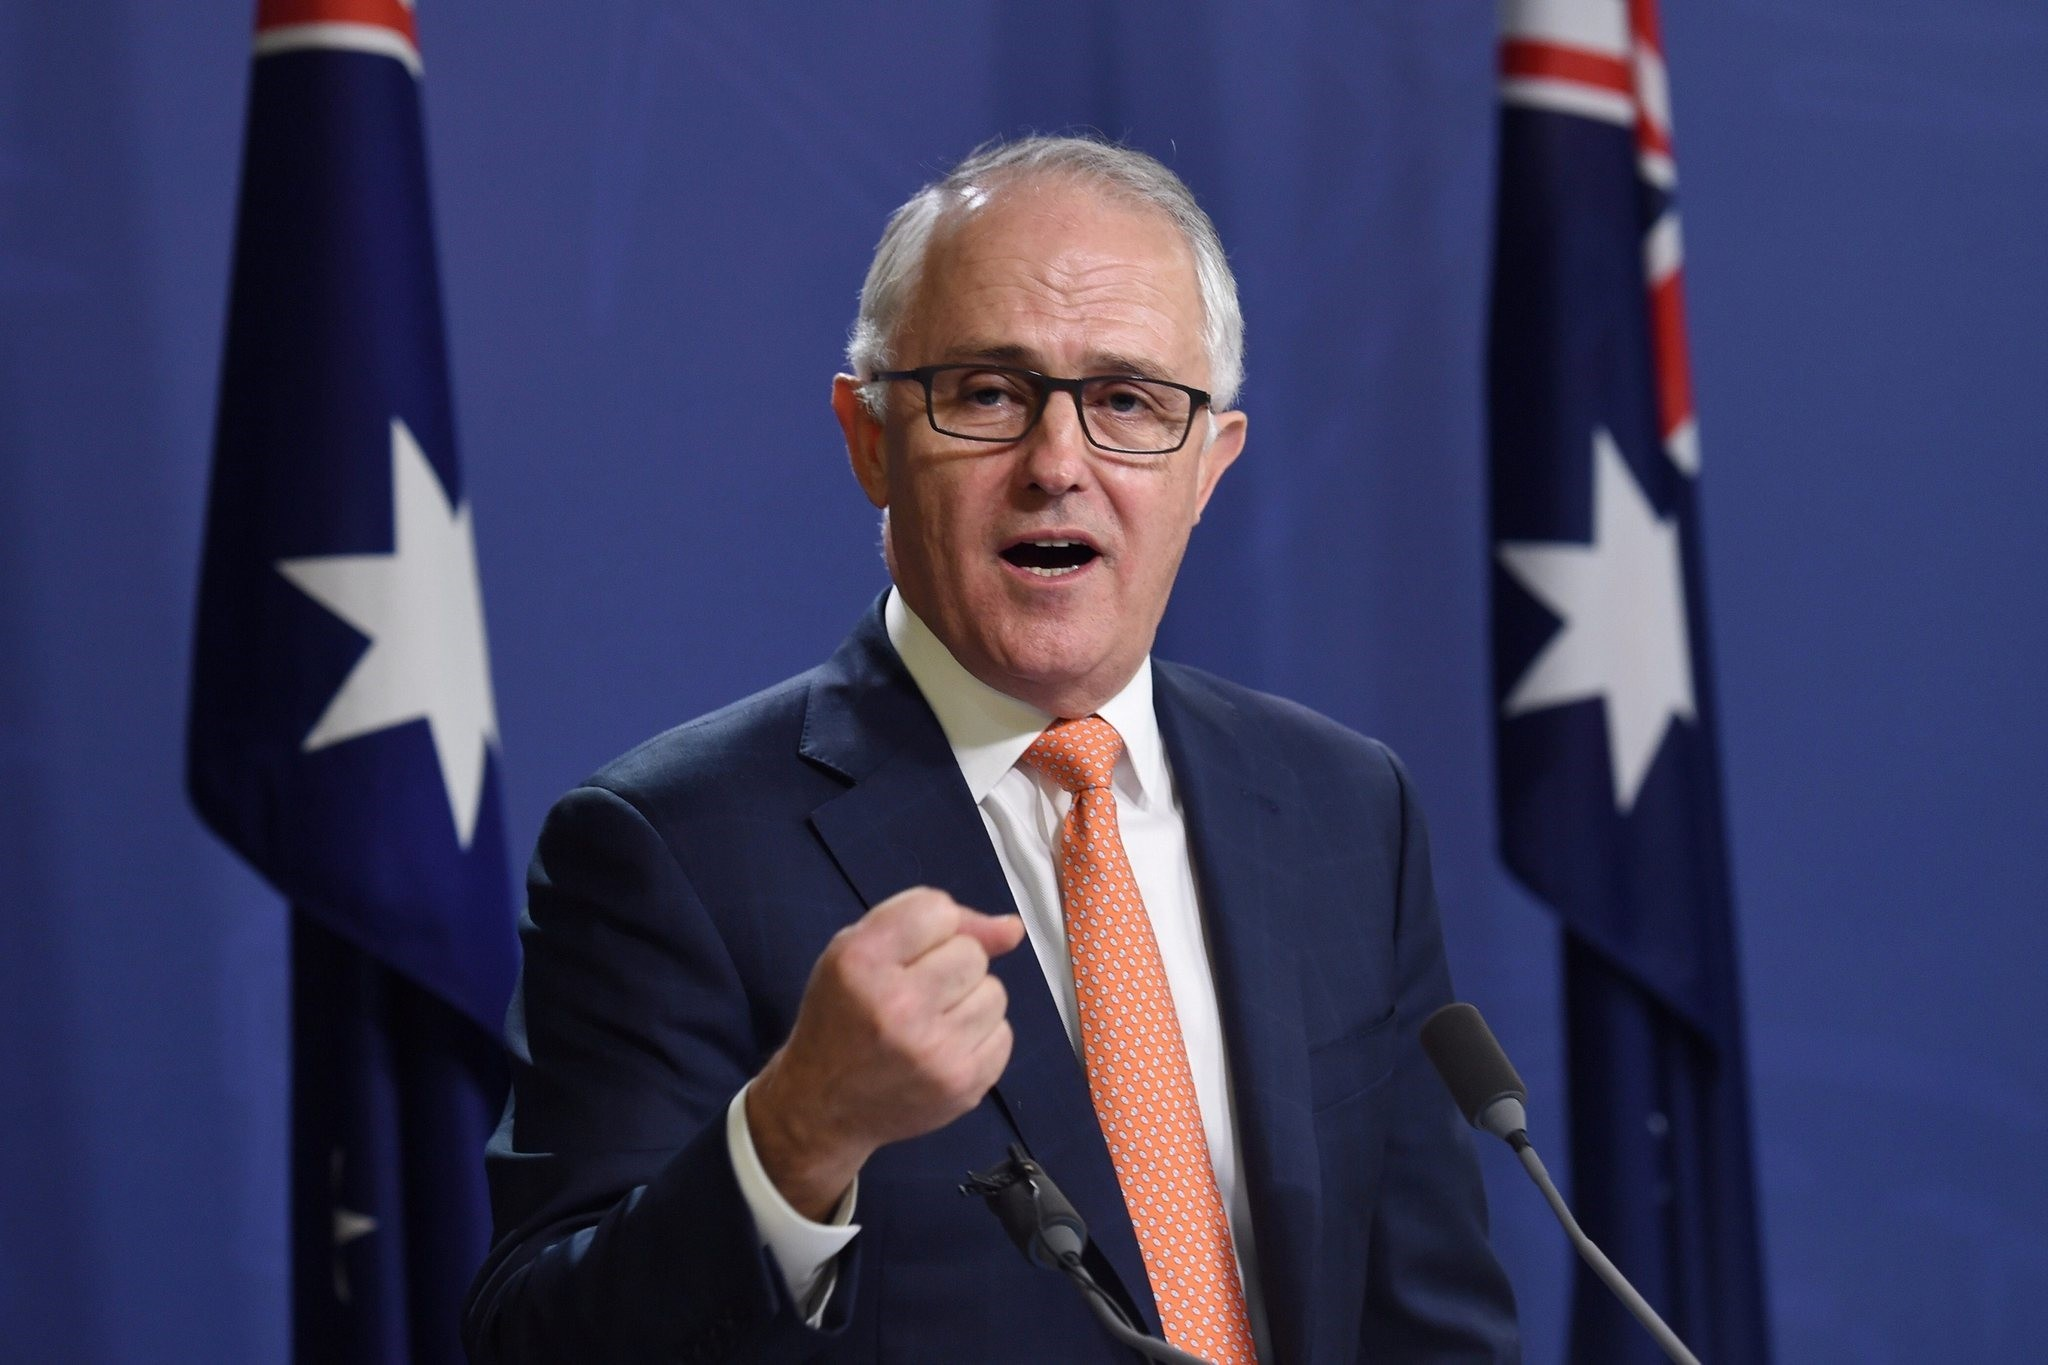 Australian Prime Minister Malcolm Turnbull speaks during a news conference in Sydney, Australia, July 10, 2016. (REUTERS Photo)